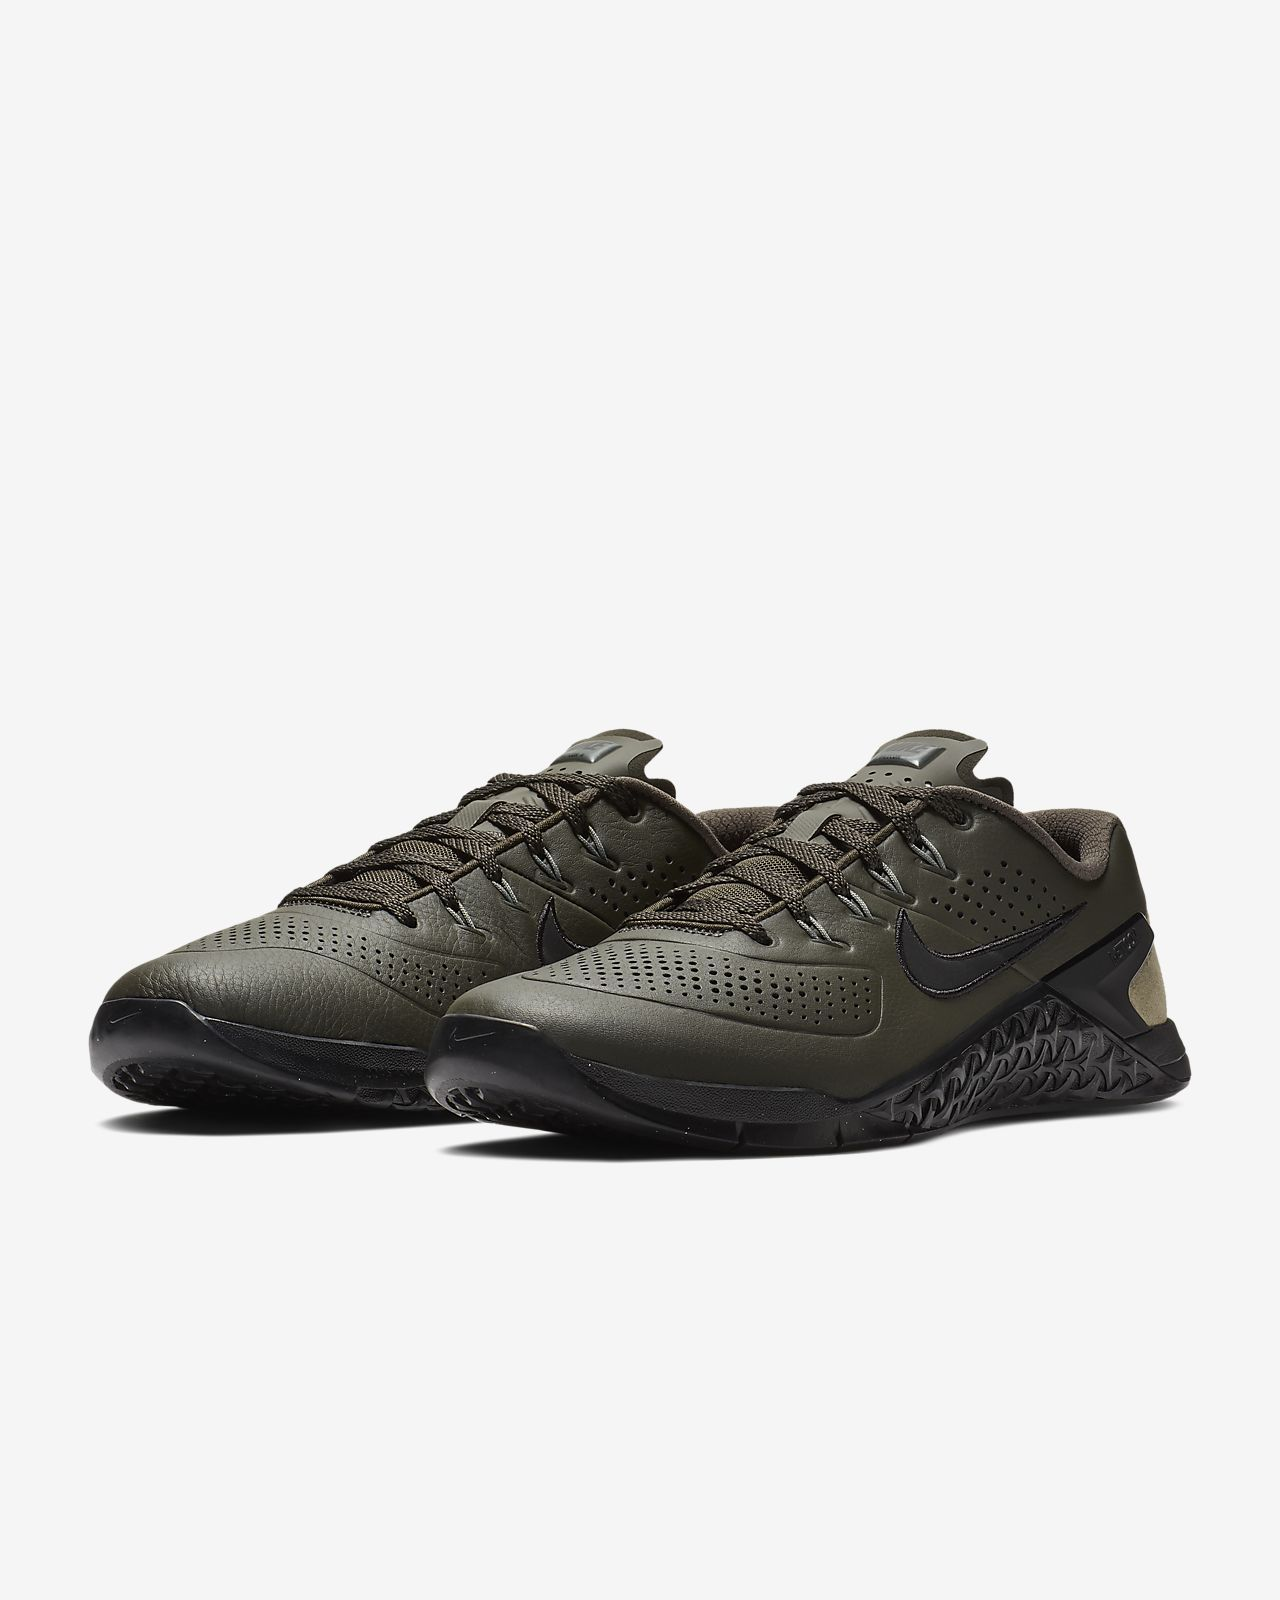 bde00b04a4a2 Nike Metcon 4 AMP Leather Men s Training Shoe